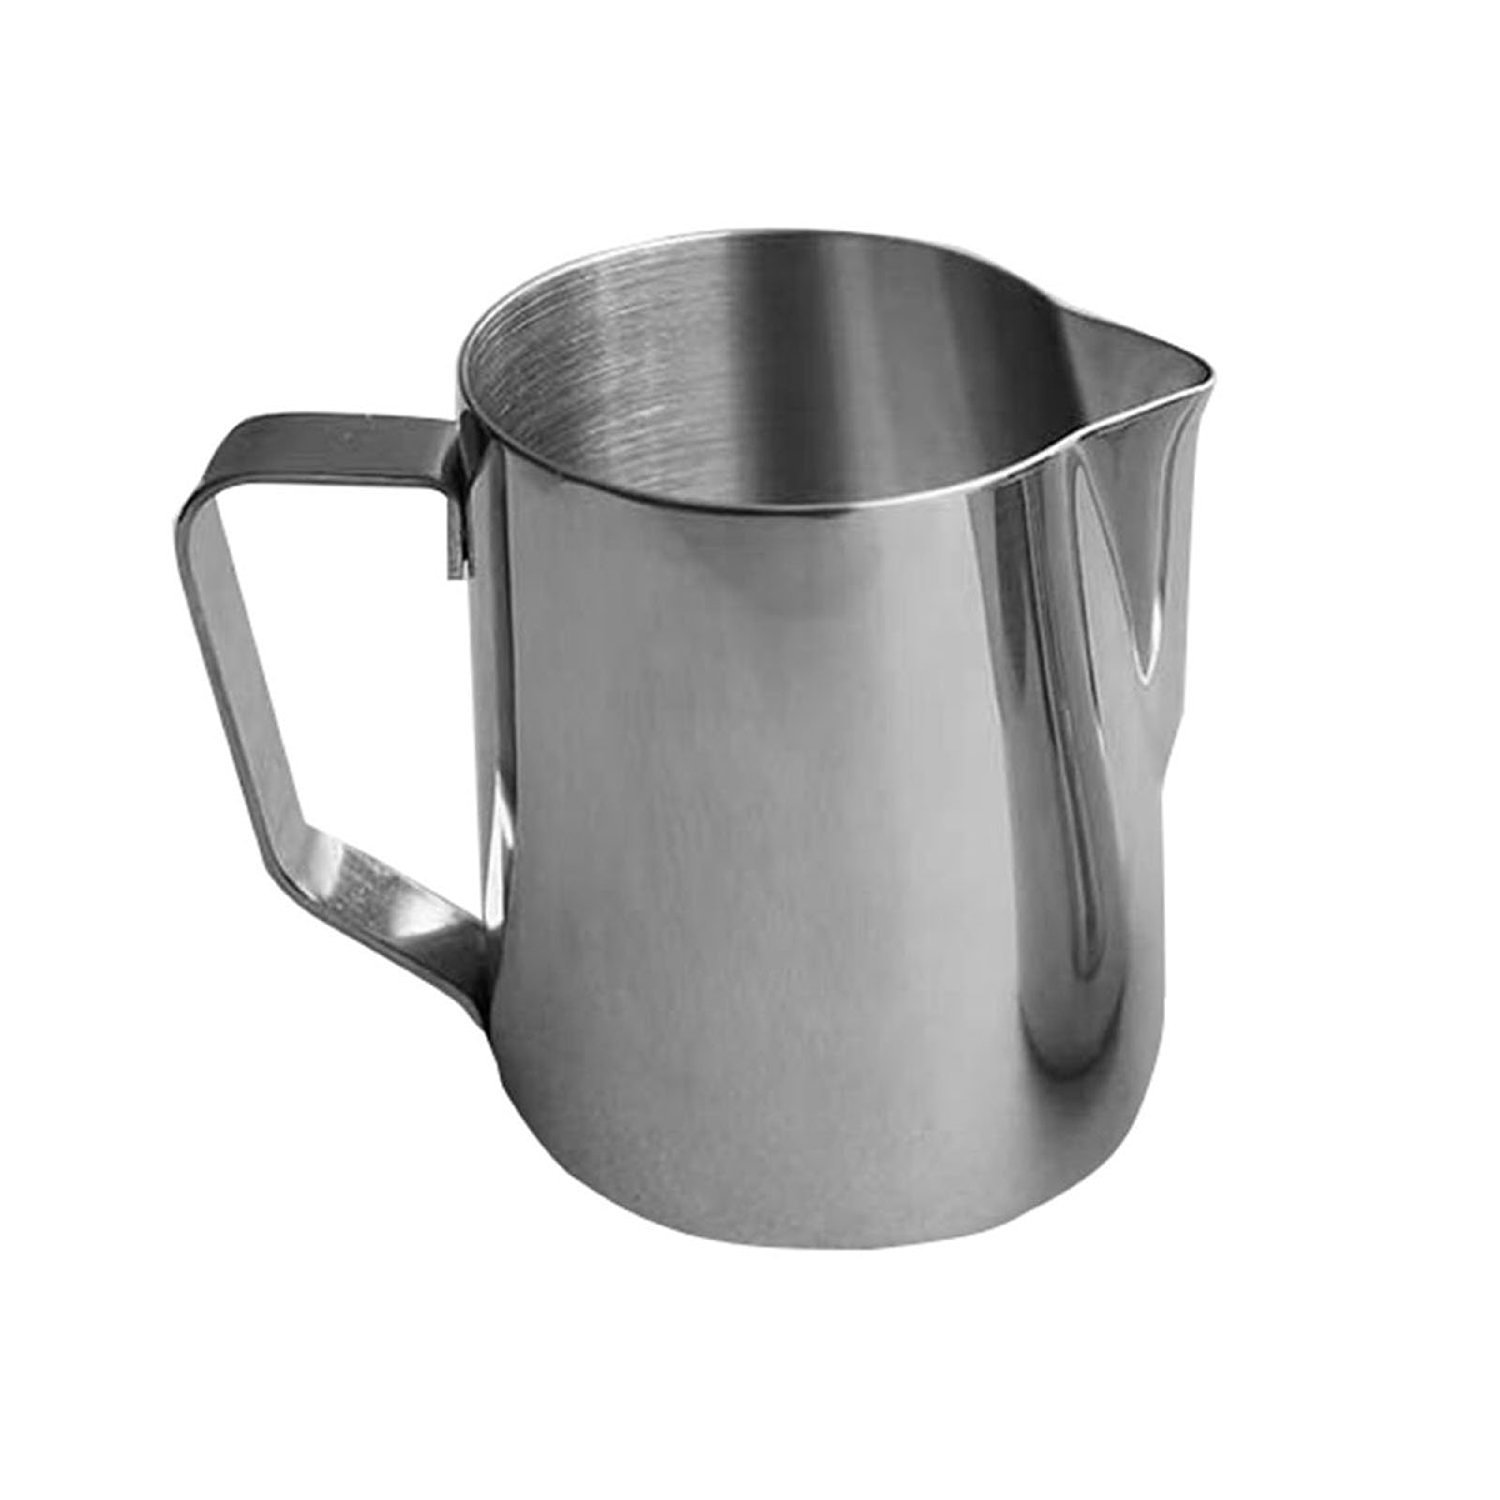 Stainless Steel Milk Frothing Pitcher Milk Frothing Jug for Espresso Machine